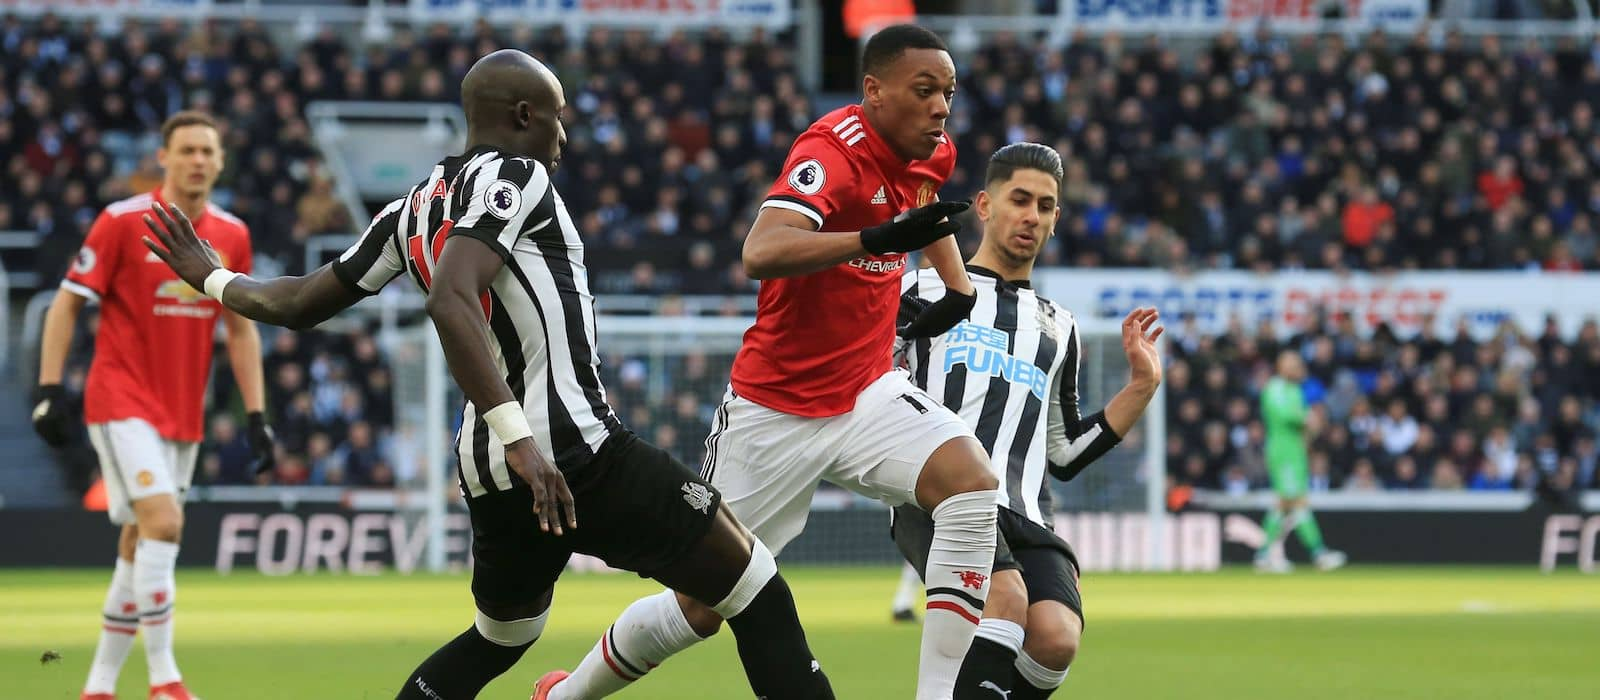 Newcastle United 1-0 Manchester United: Player ratings